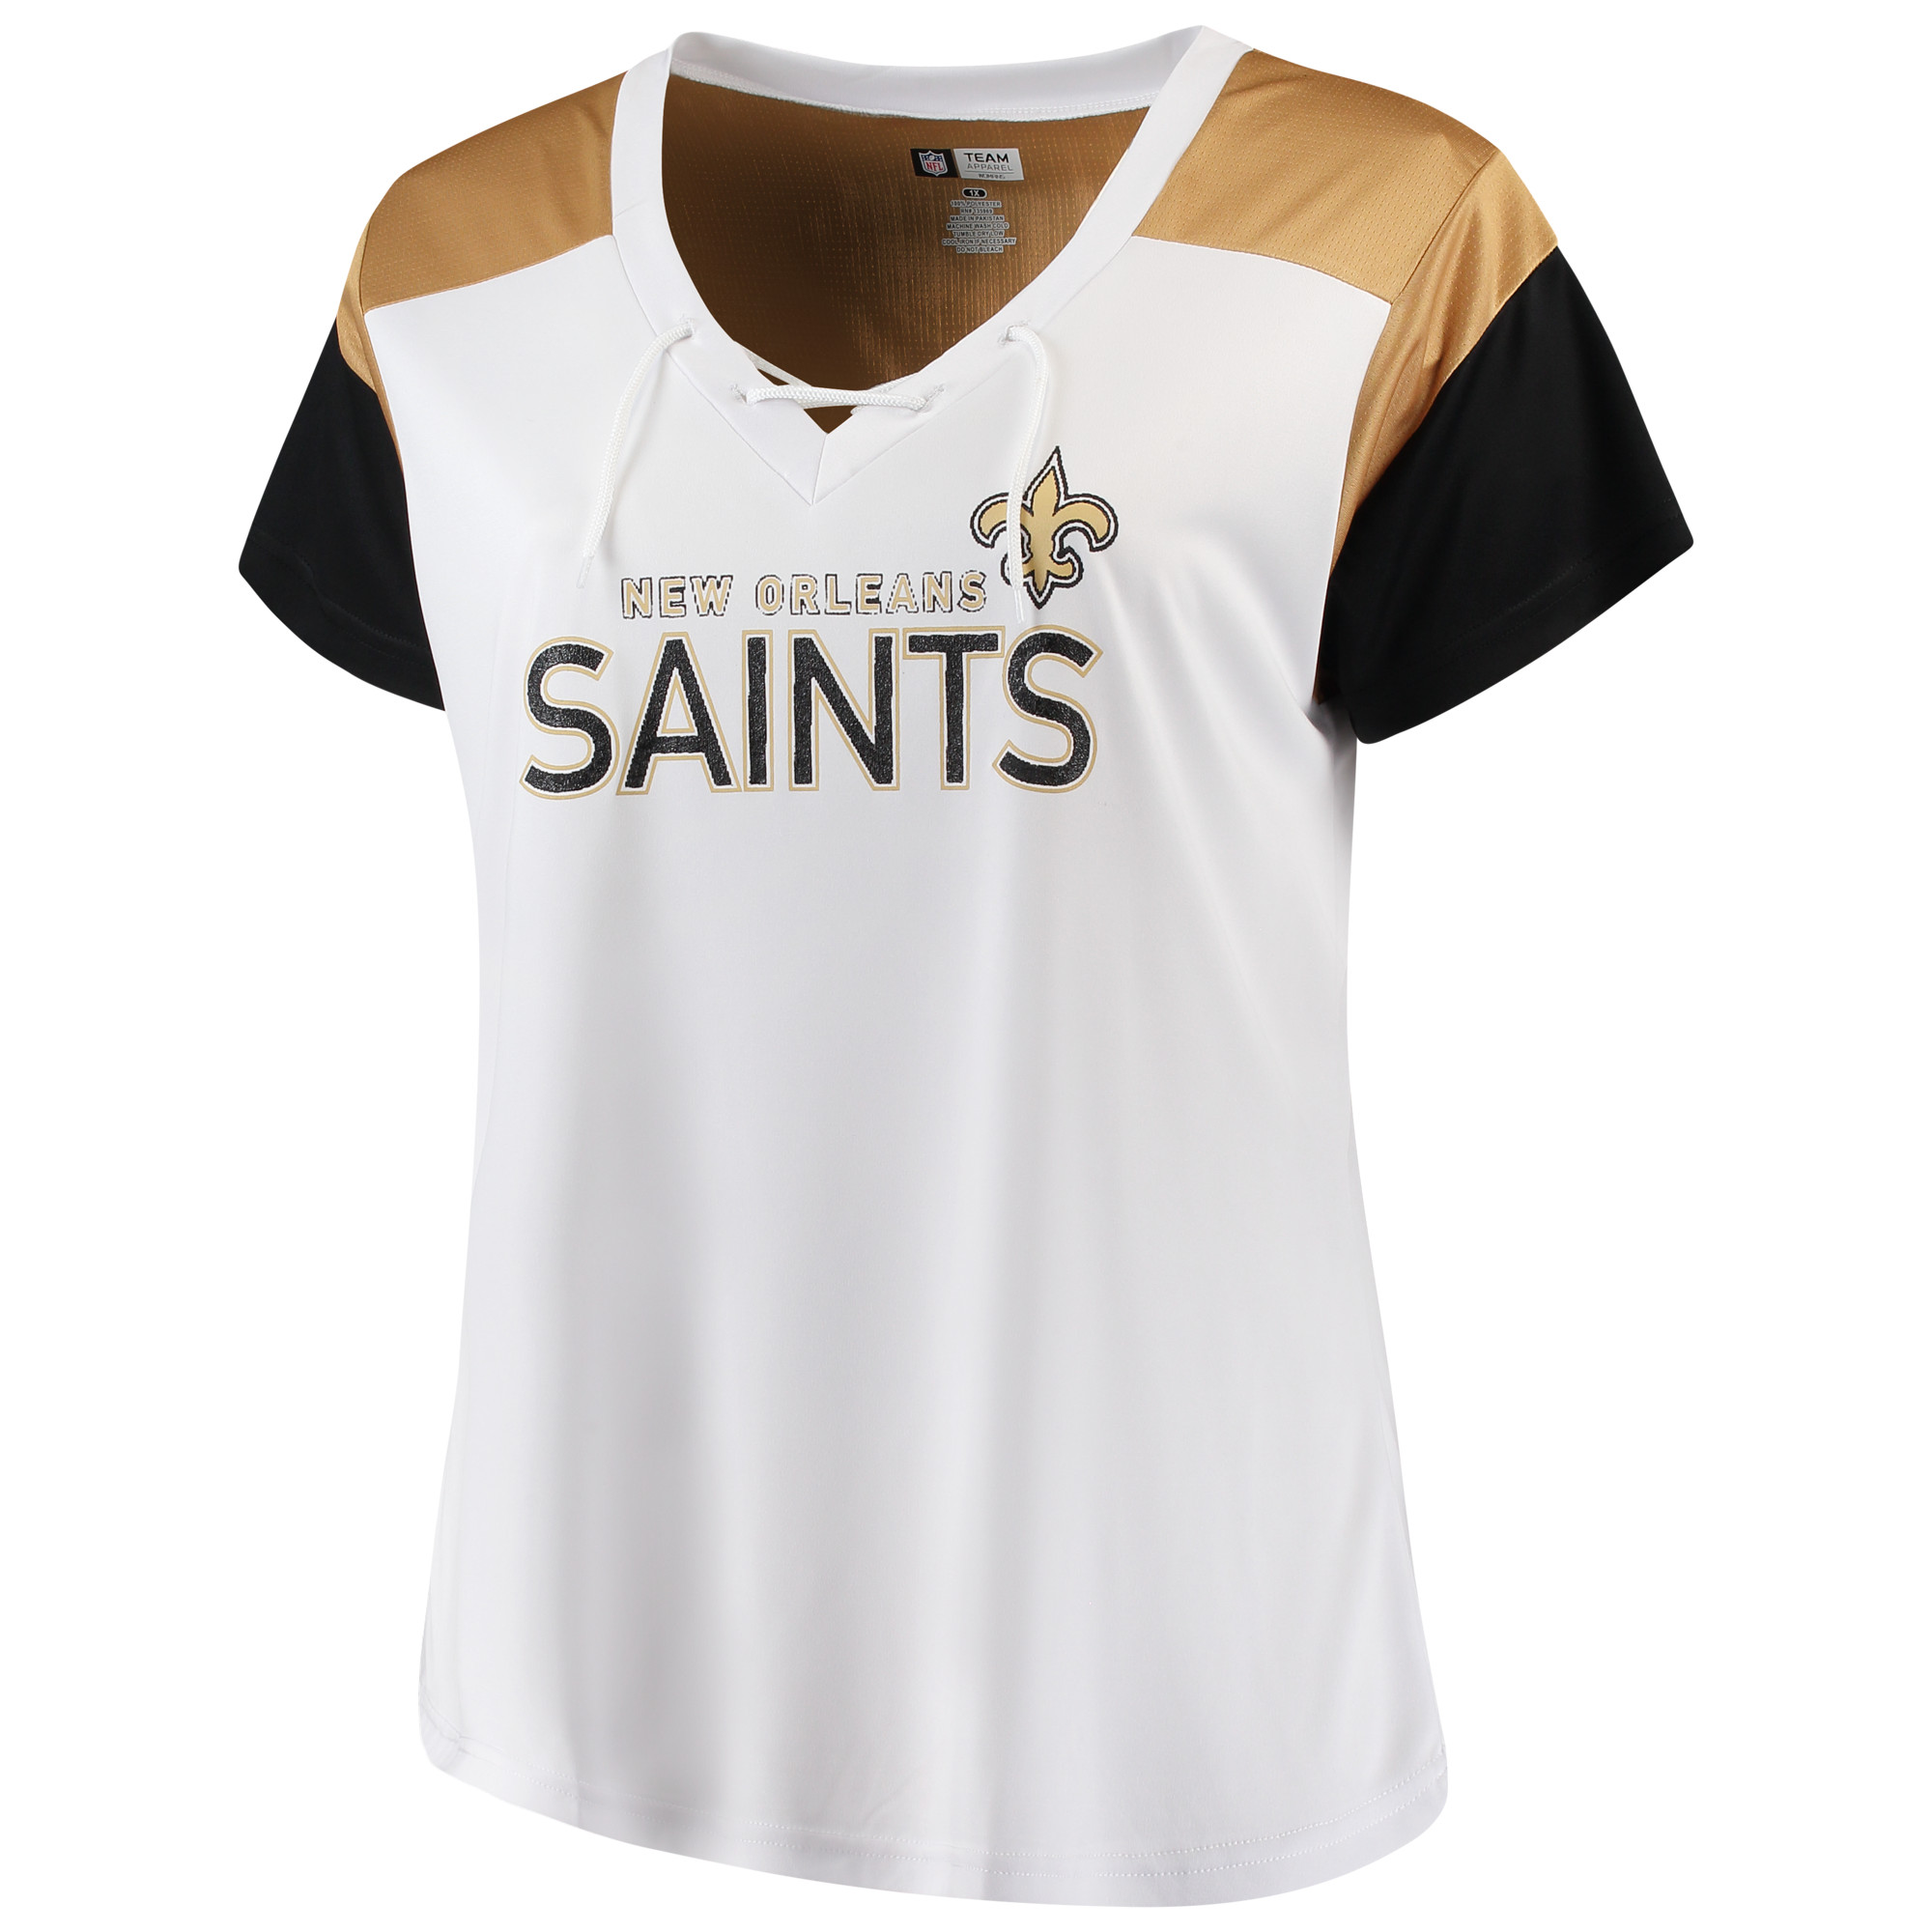 Women's Majestic White/Black New Orleans Saints Lace-Up V-Neck T-Shirt